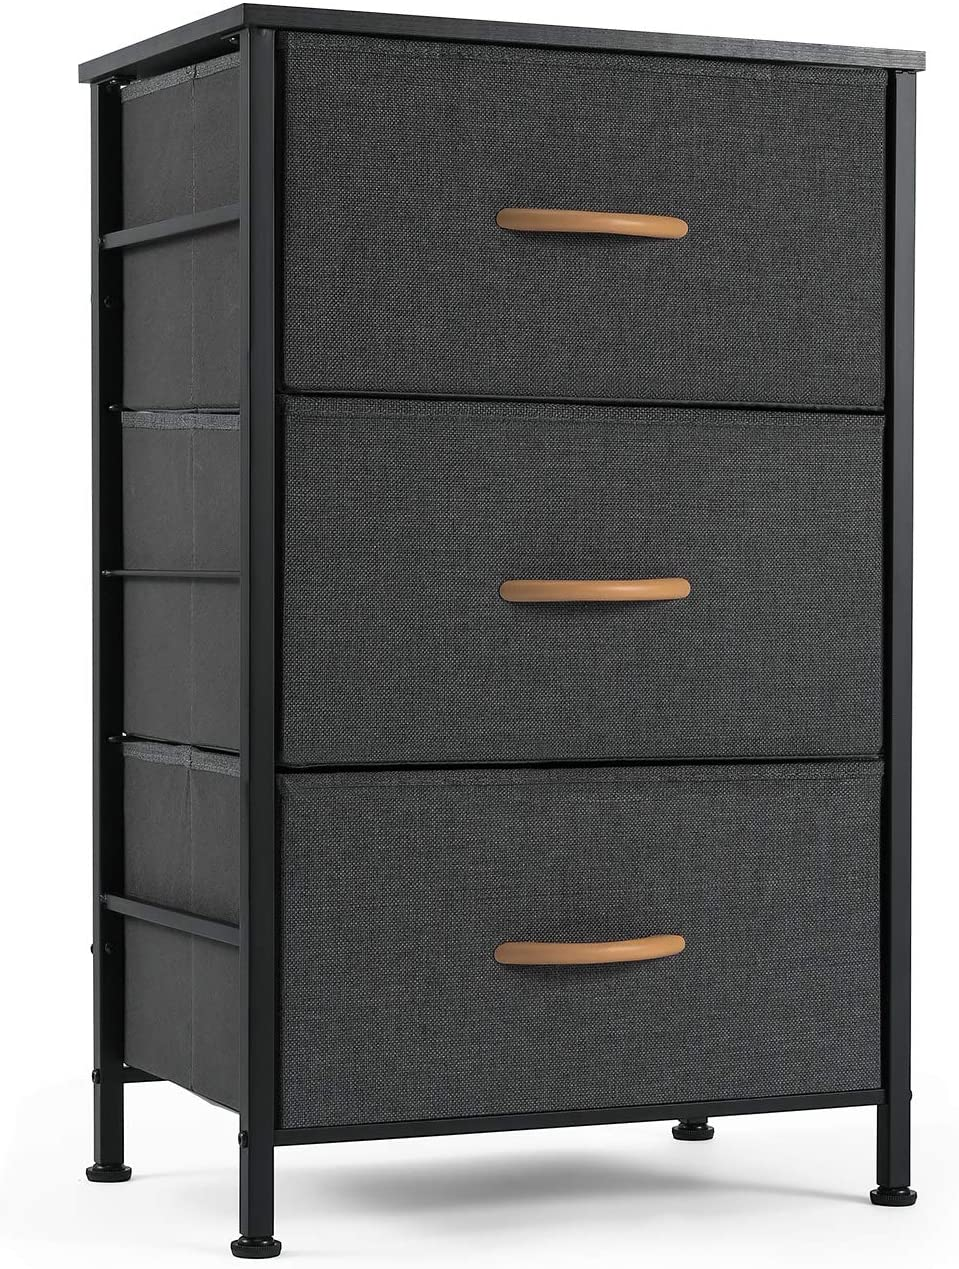 ROMOON Nightstand Chest with 3 Fabric Drawers, Bedside Furniture, Lightweight Accent Table, Storage Drawer Unit with Wood Top Fabric Bins for Bedroom, Hallway, Entryway, Closets, Nursery-Dark Indigo